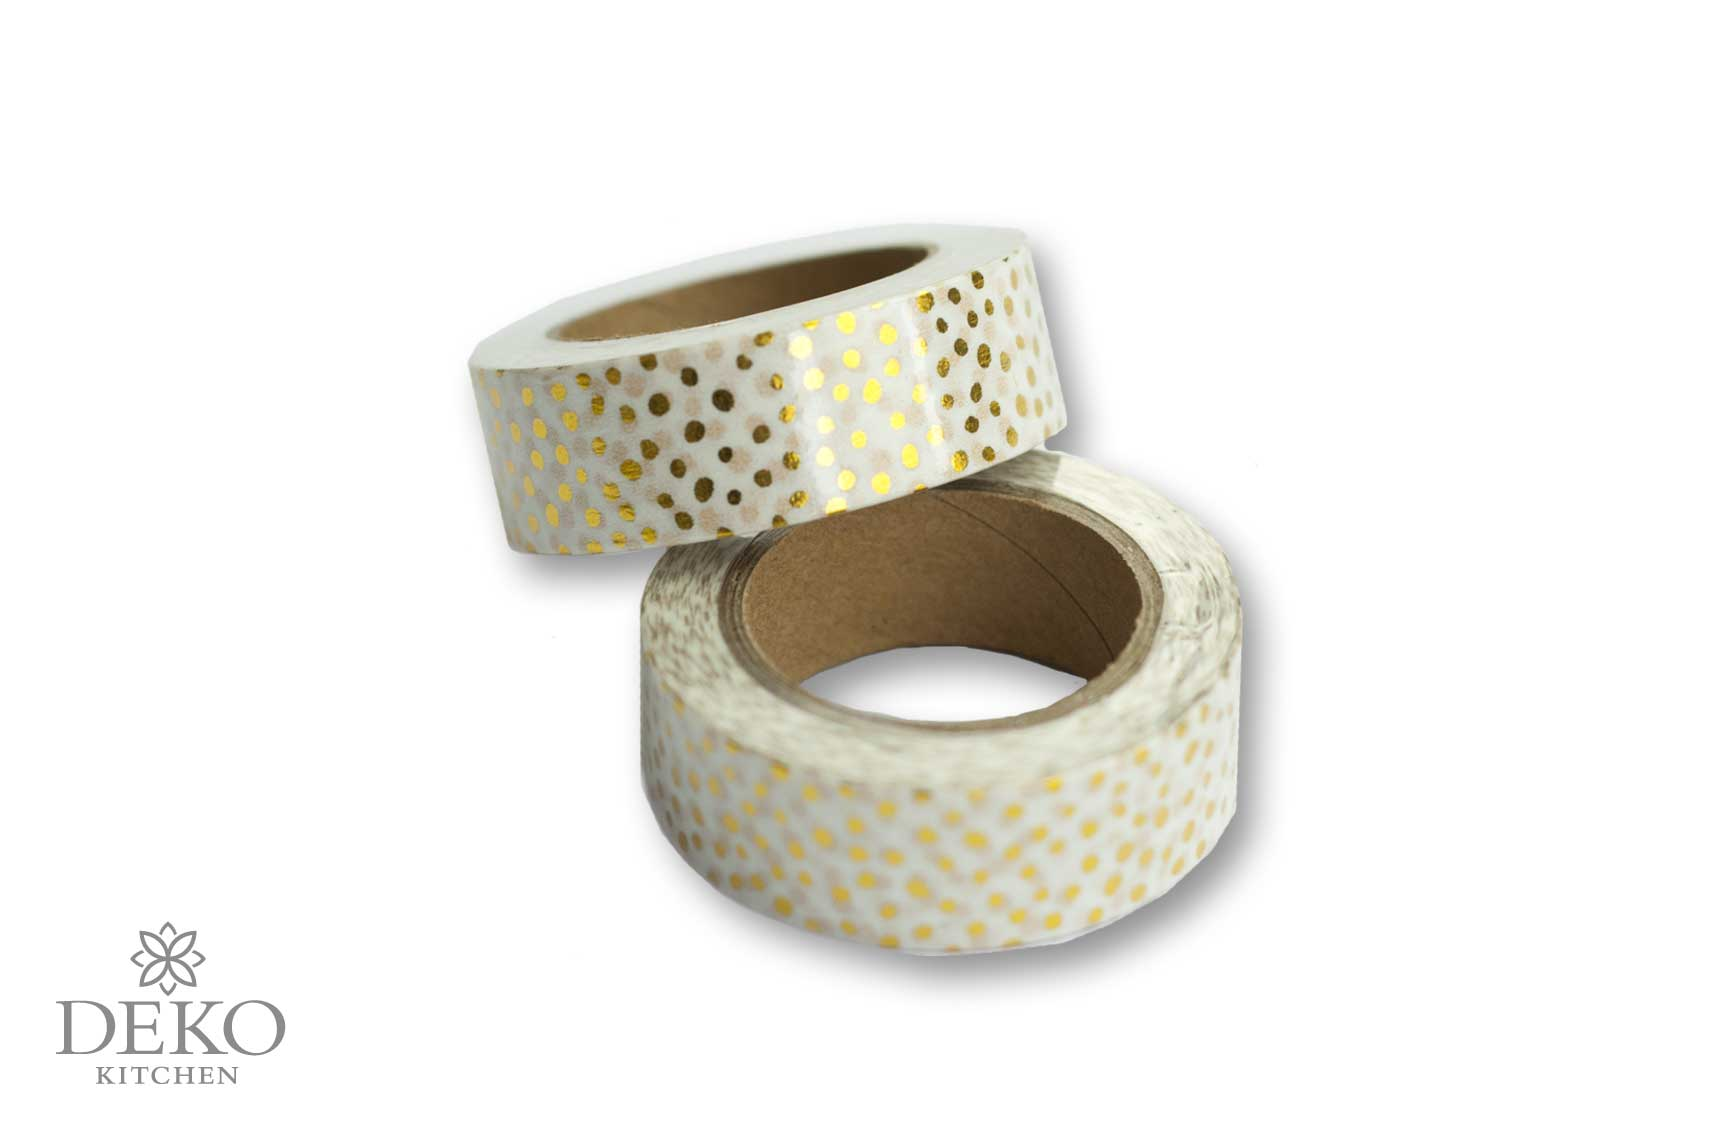 Washi Tape Gold Gepunktet 10m Deko Kitchen Shop